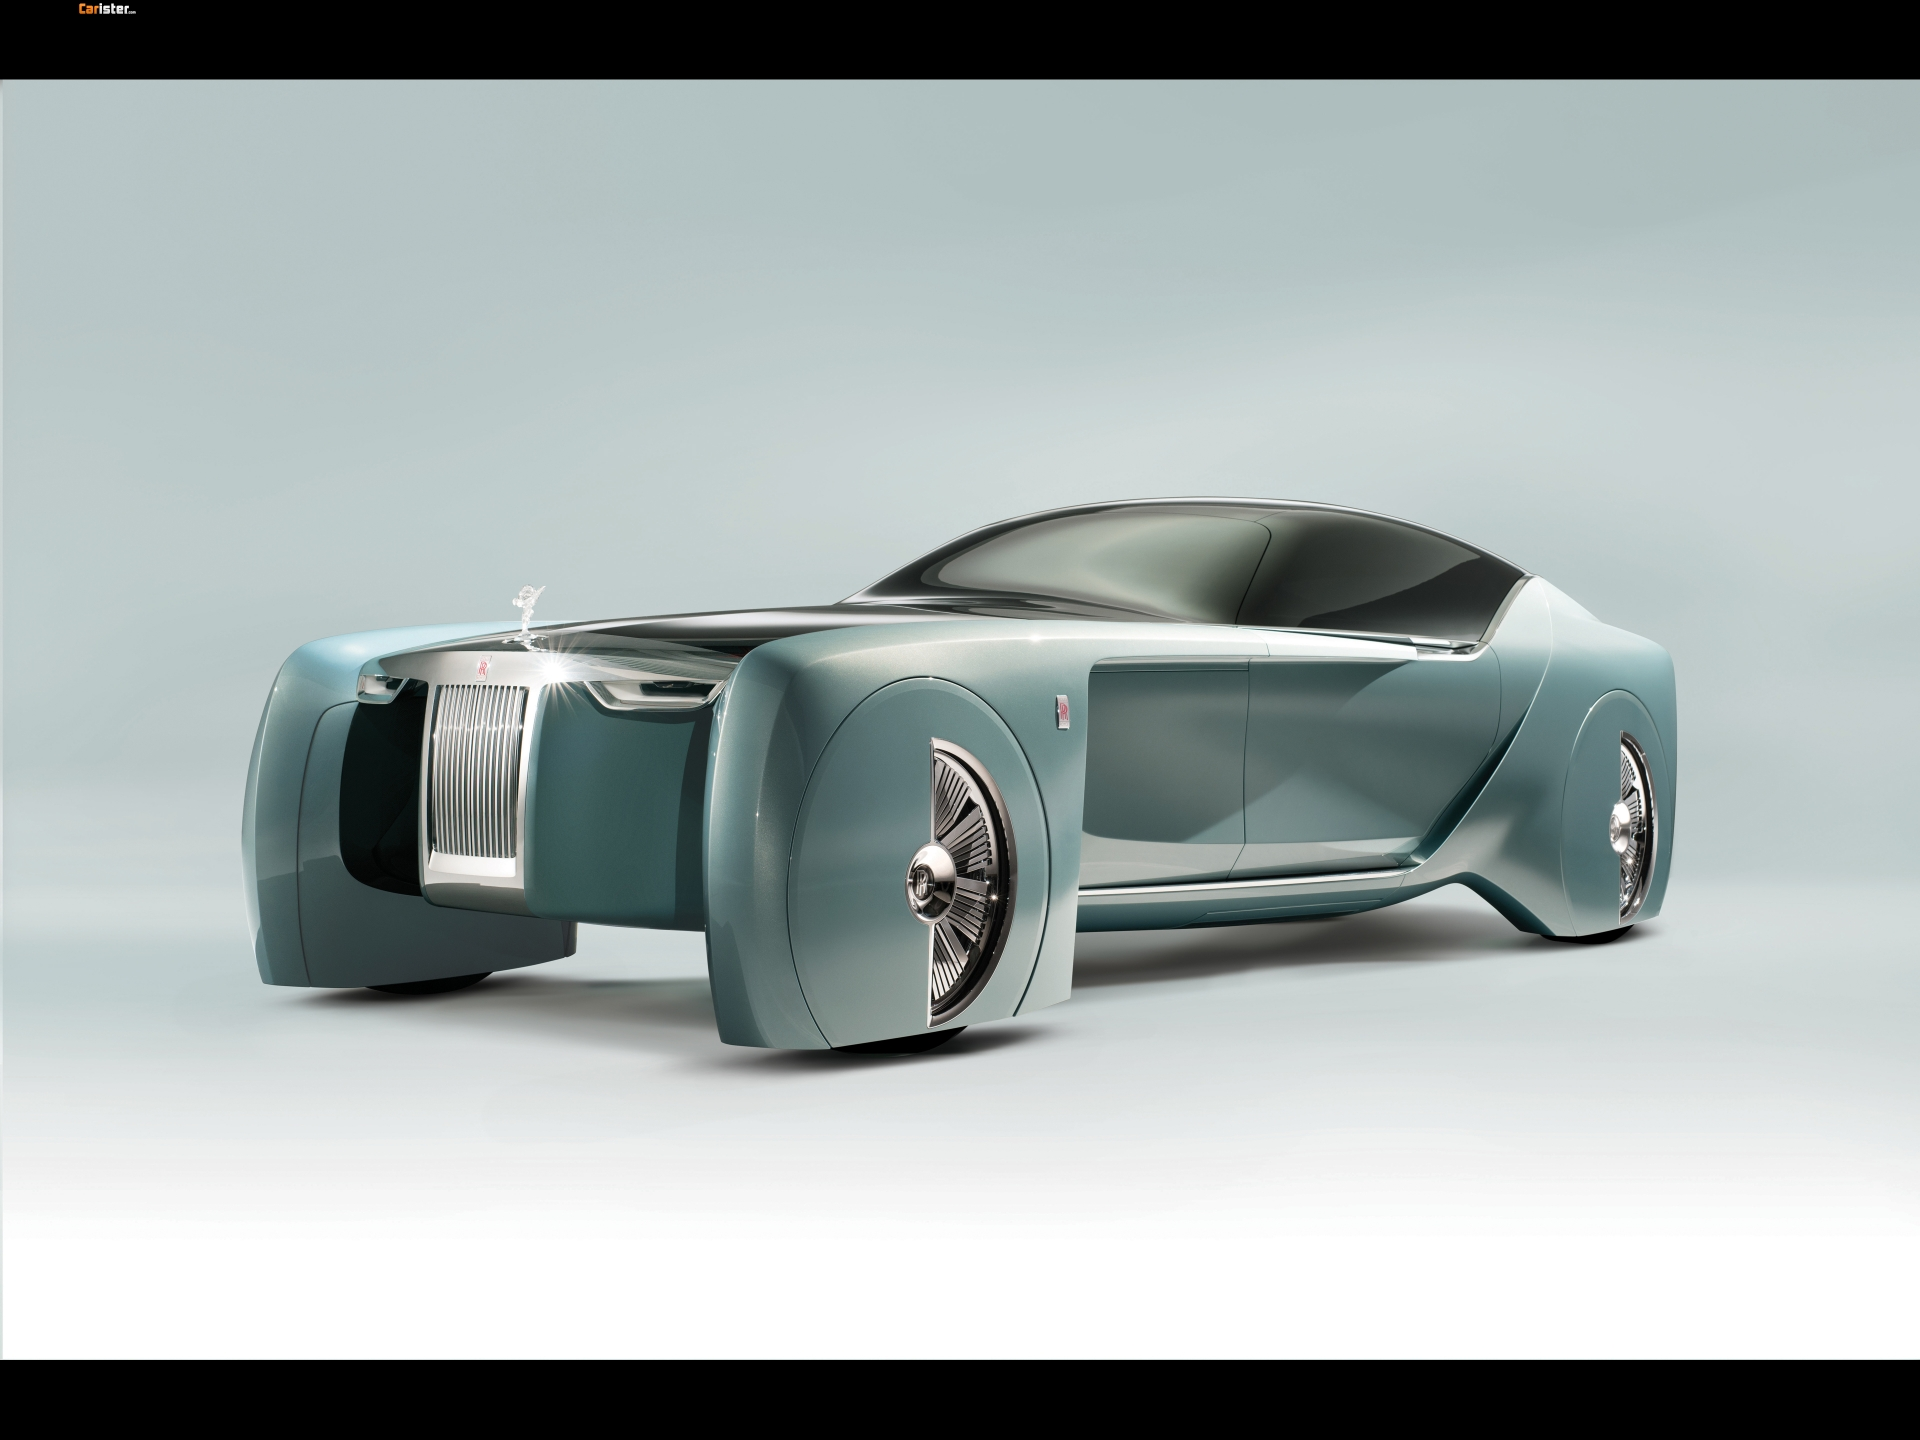 Rolls-Royce Vision Next 100 Concept 2016 - Photo 15 - Taille: 1920x1440